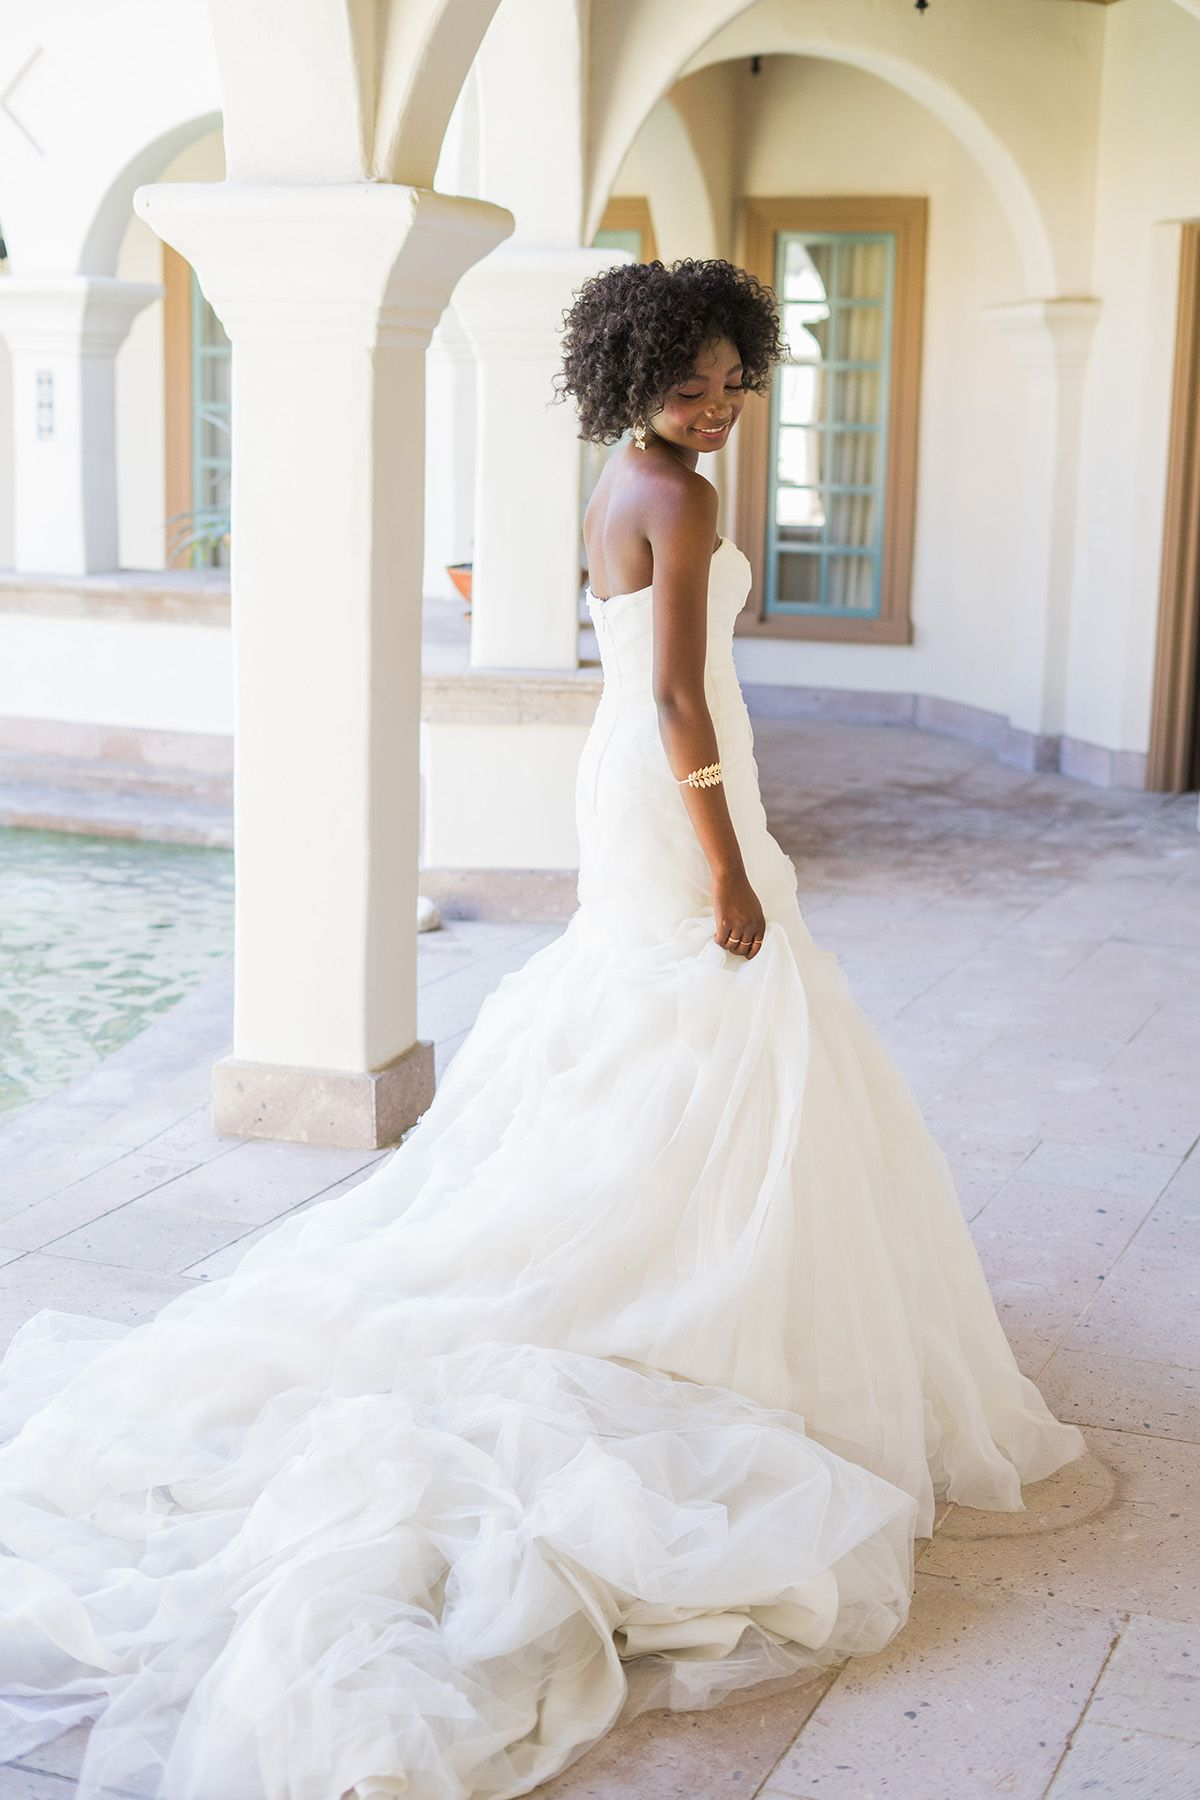 c1da1f7650c8 White by Vera Wang trumpet wedding dress is handcrafted with over 70 yards  of bias-cut organza tiers. #weddingdress #affiliatelink